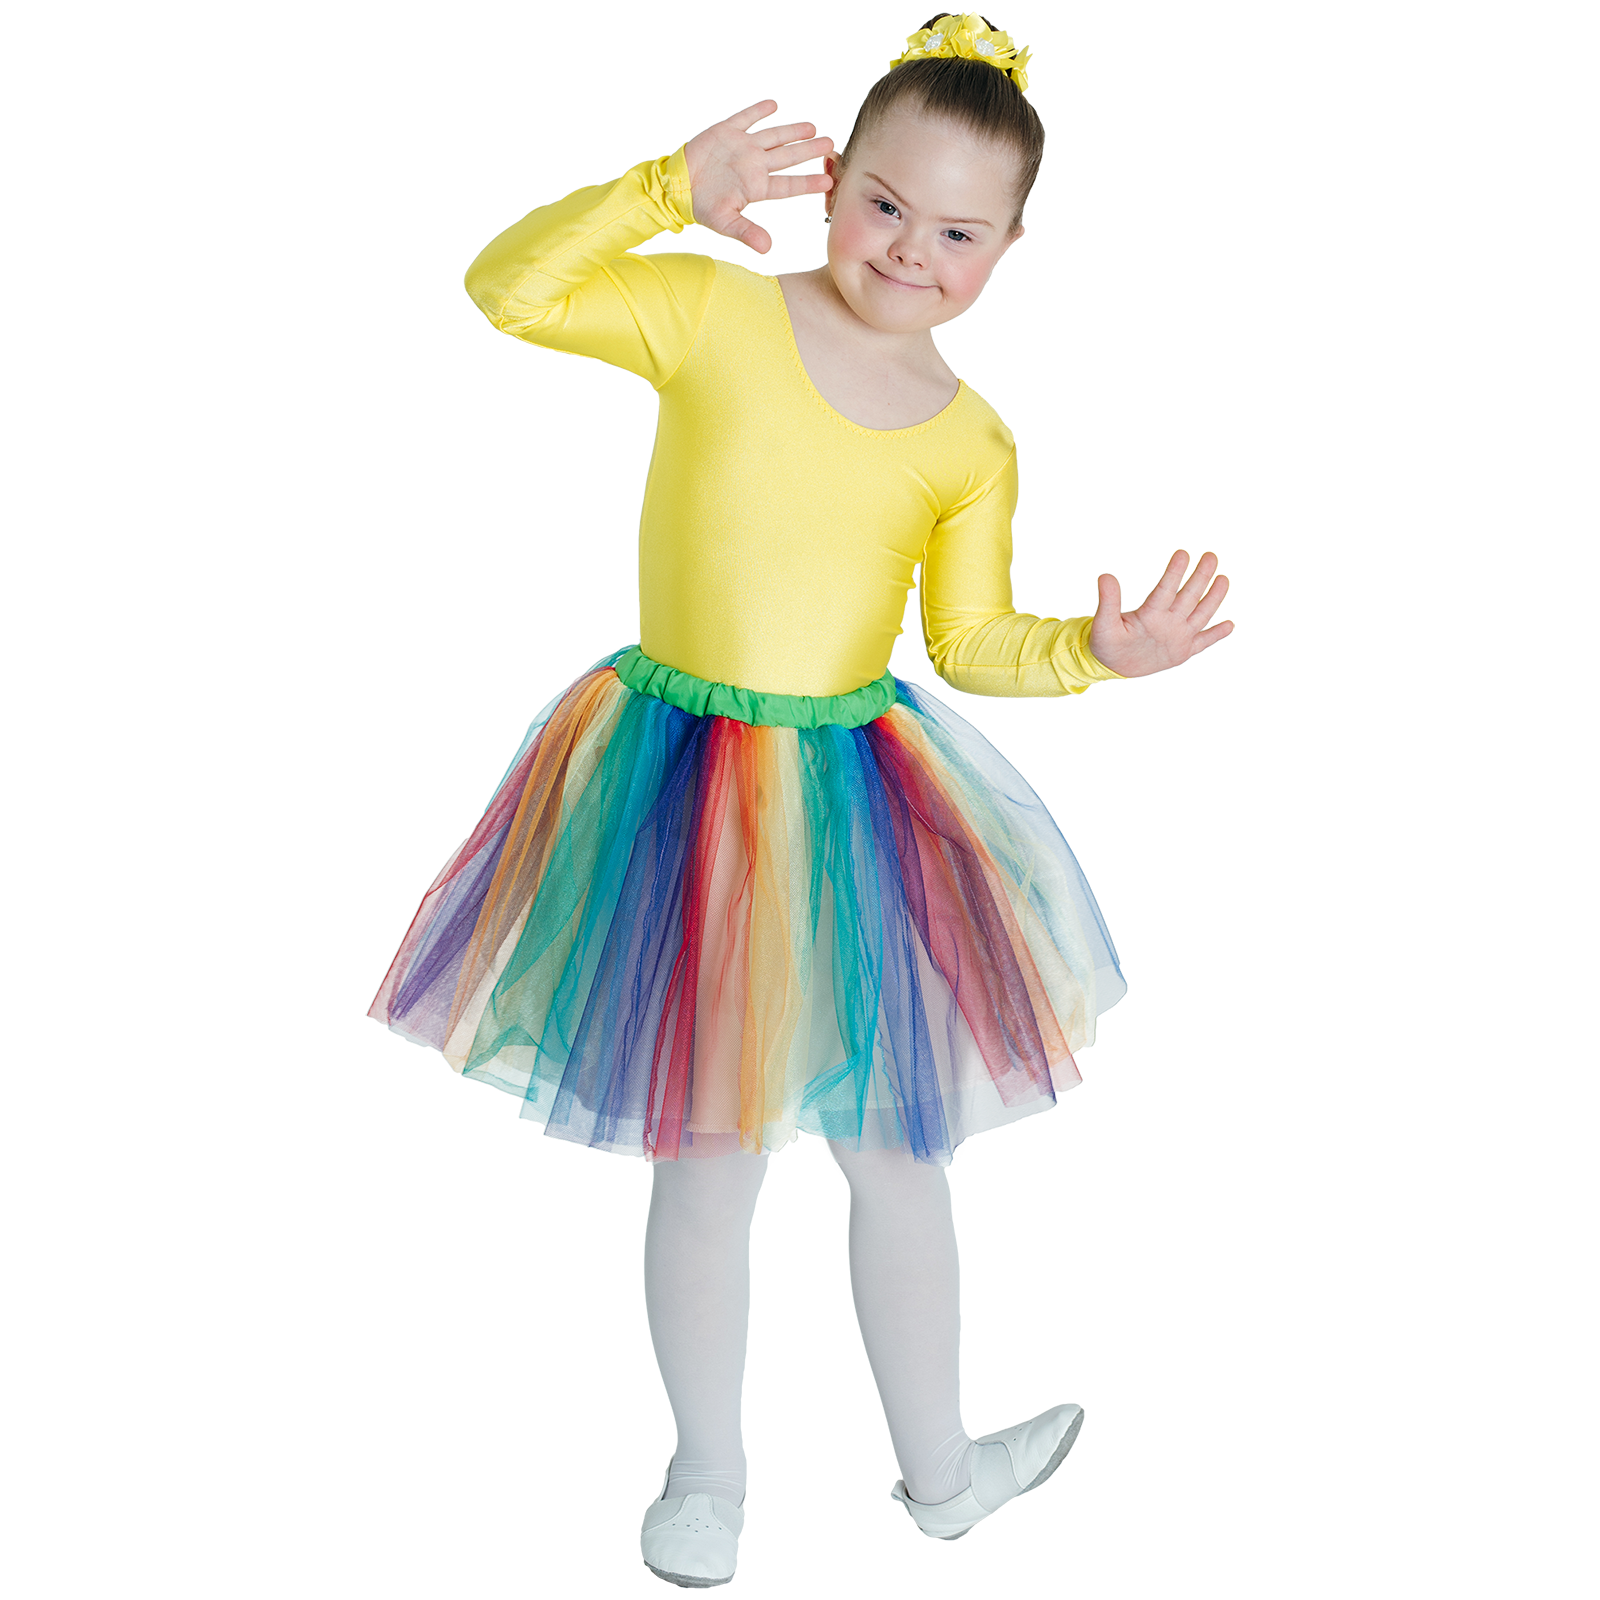 young dancer with special needs in dance costume